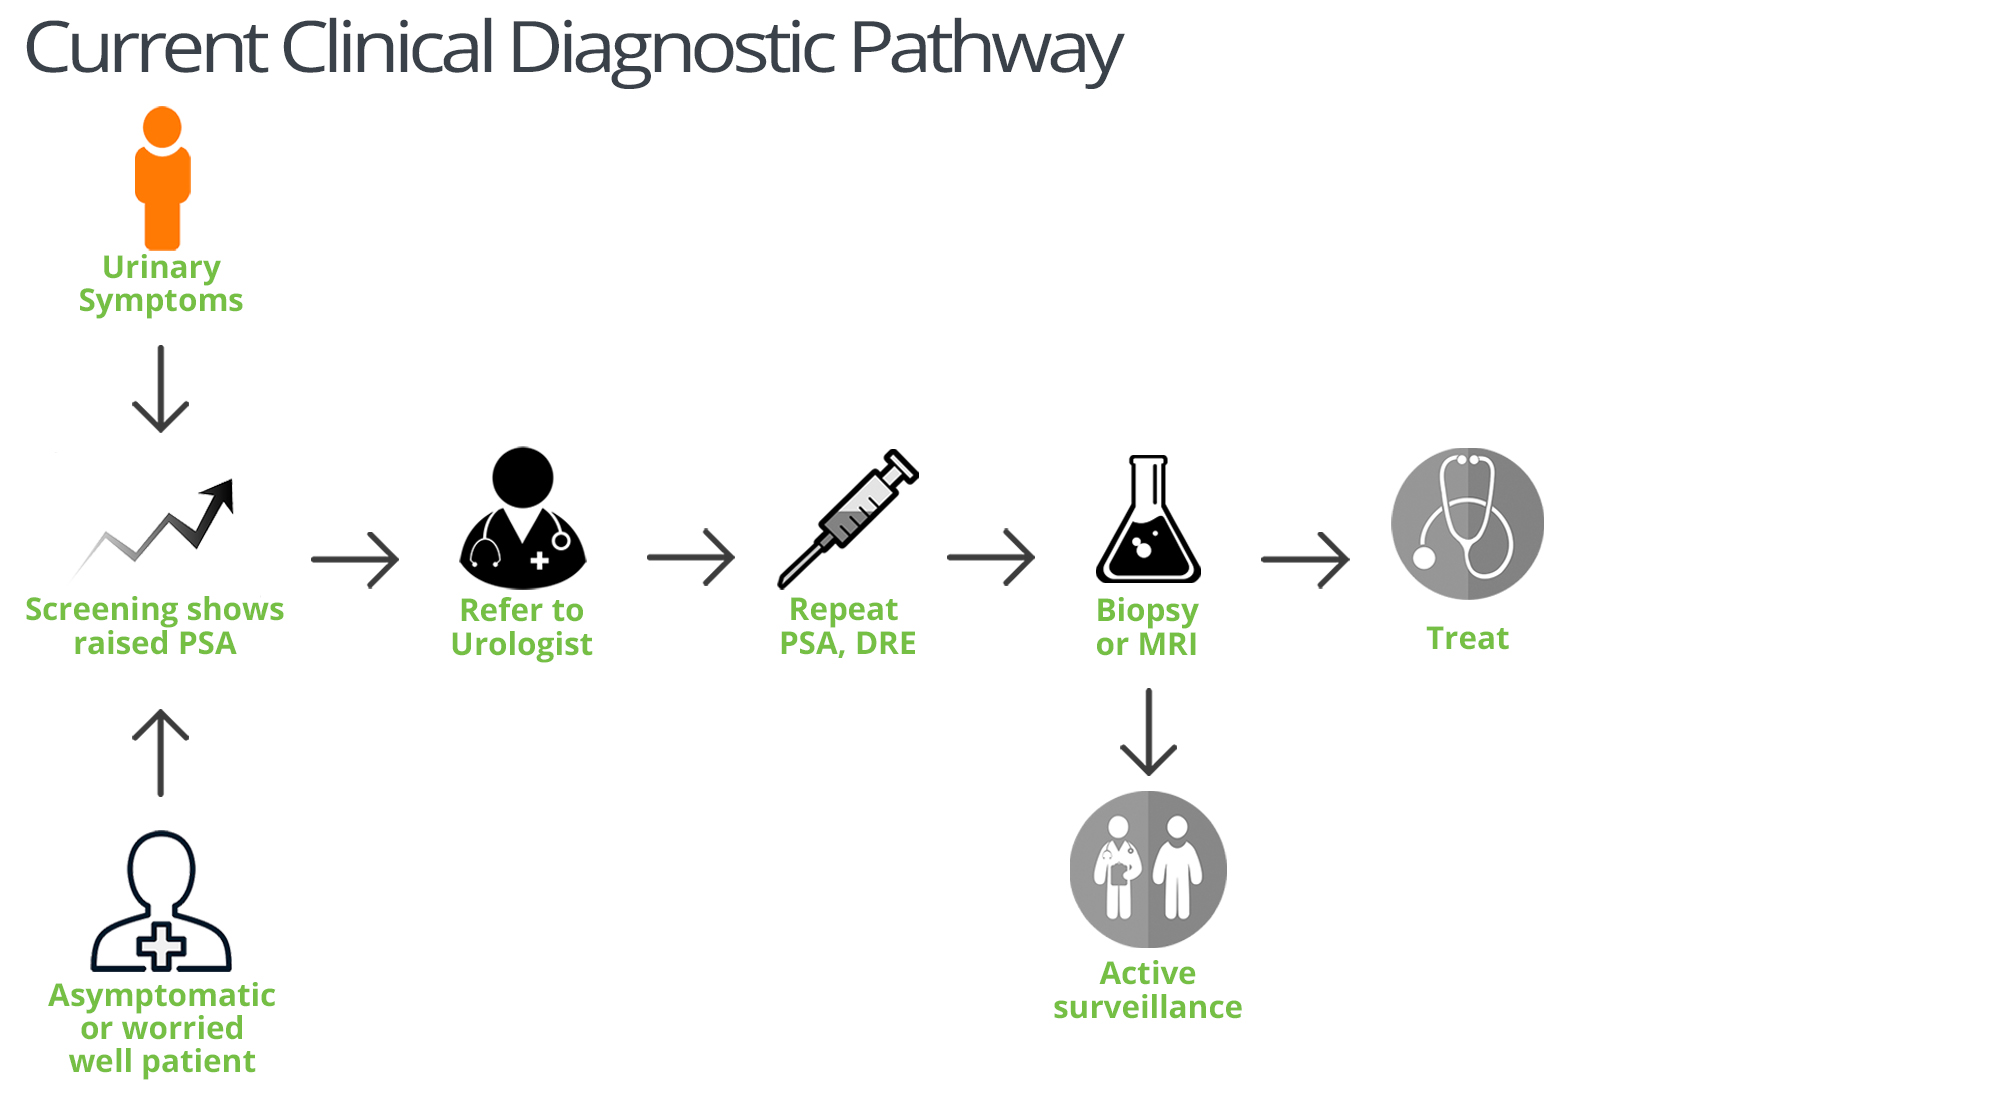 Current Clinical Prostate Cancer Diagnostic Pathway